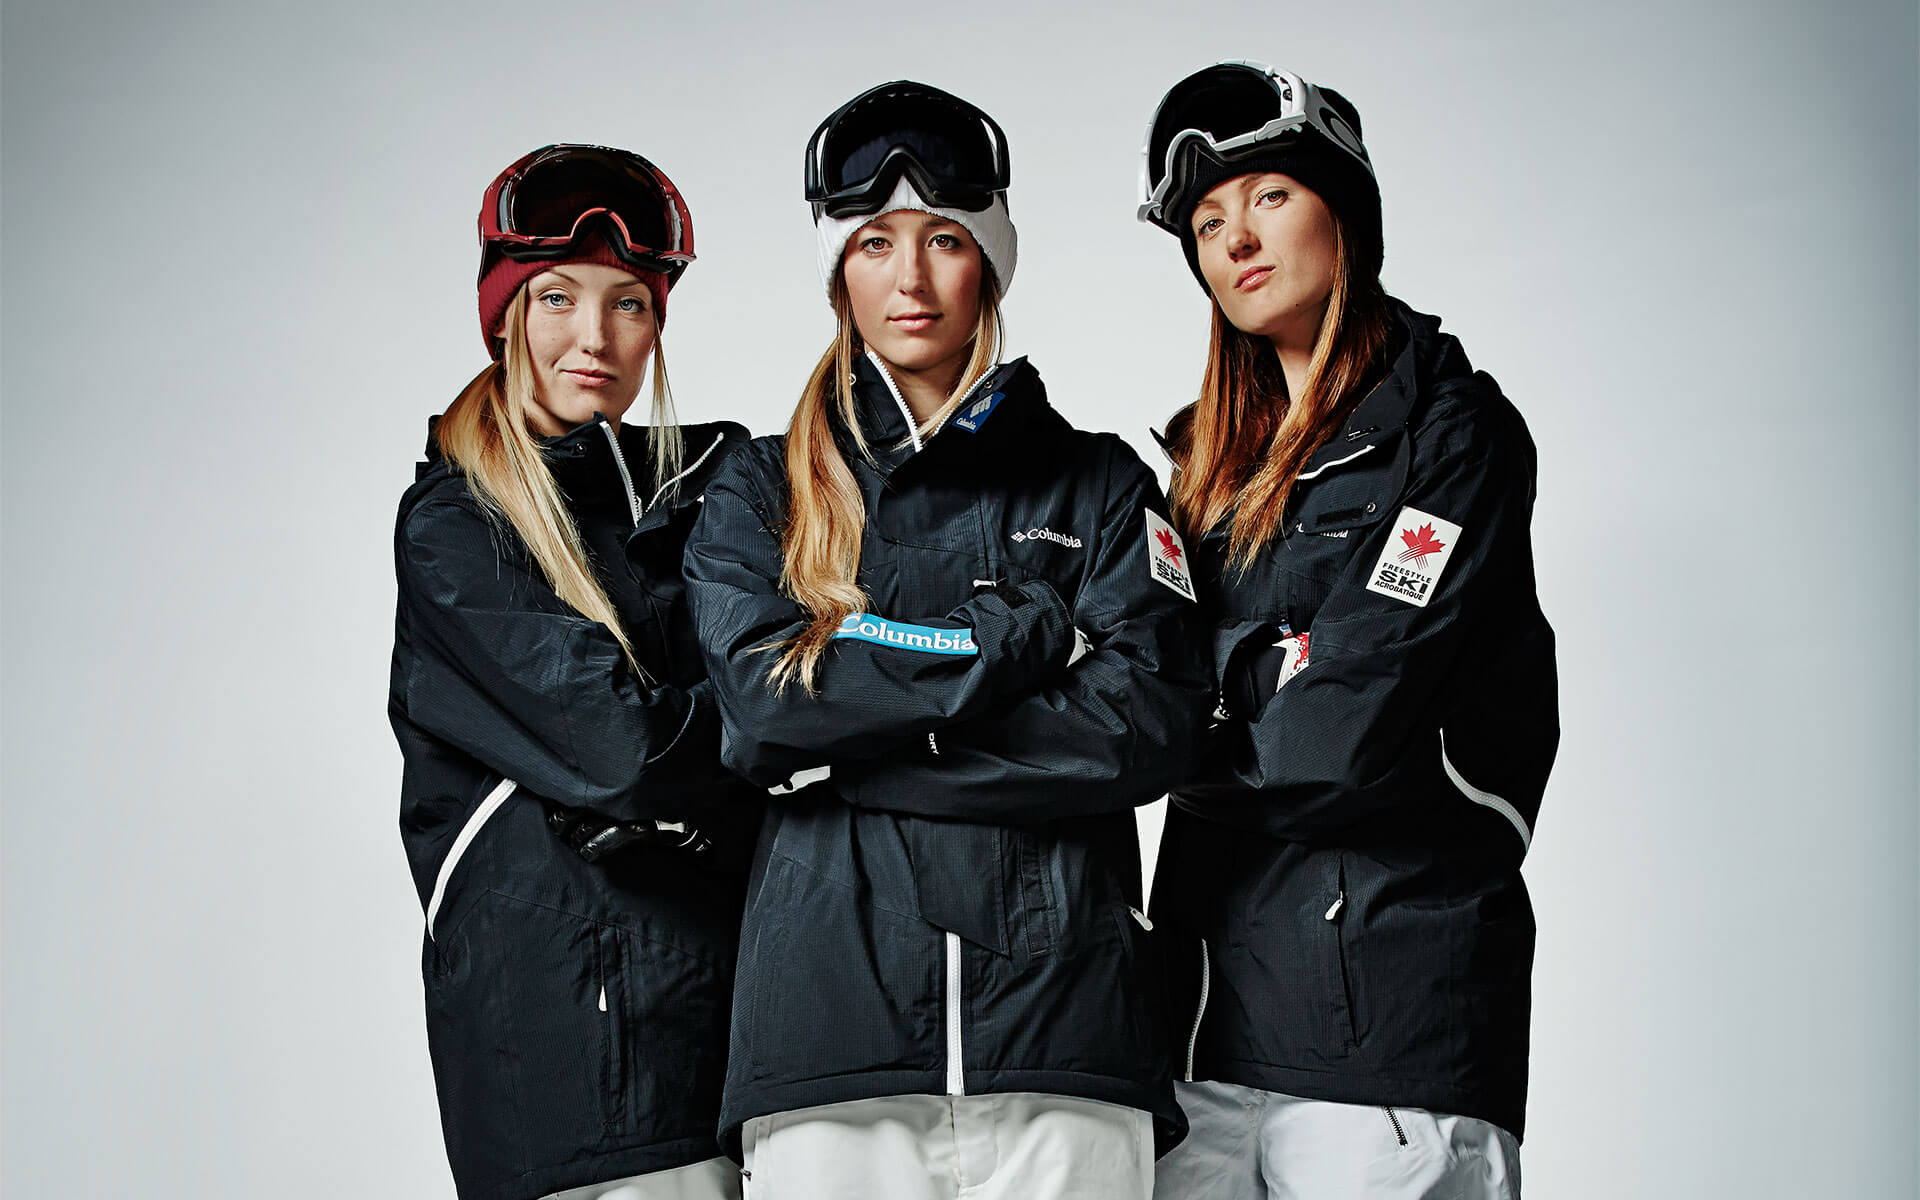 Unified Content, Unified Content Toronto, Aaron Cobb, Milk2Go, Milk 2 Go, Dufour Lapointe Sisters, Skiers, Olympic Skiing, Sisters, Team Canada, Canadian Skiers, Photography, Sports, Athletes, Sports Photography,